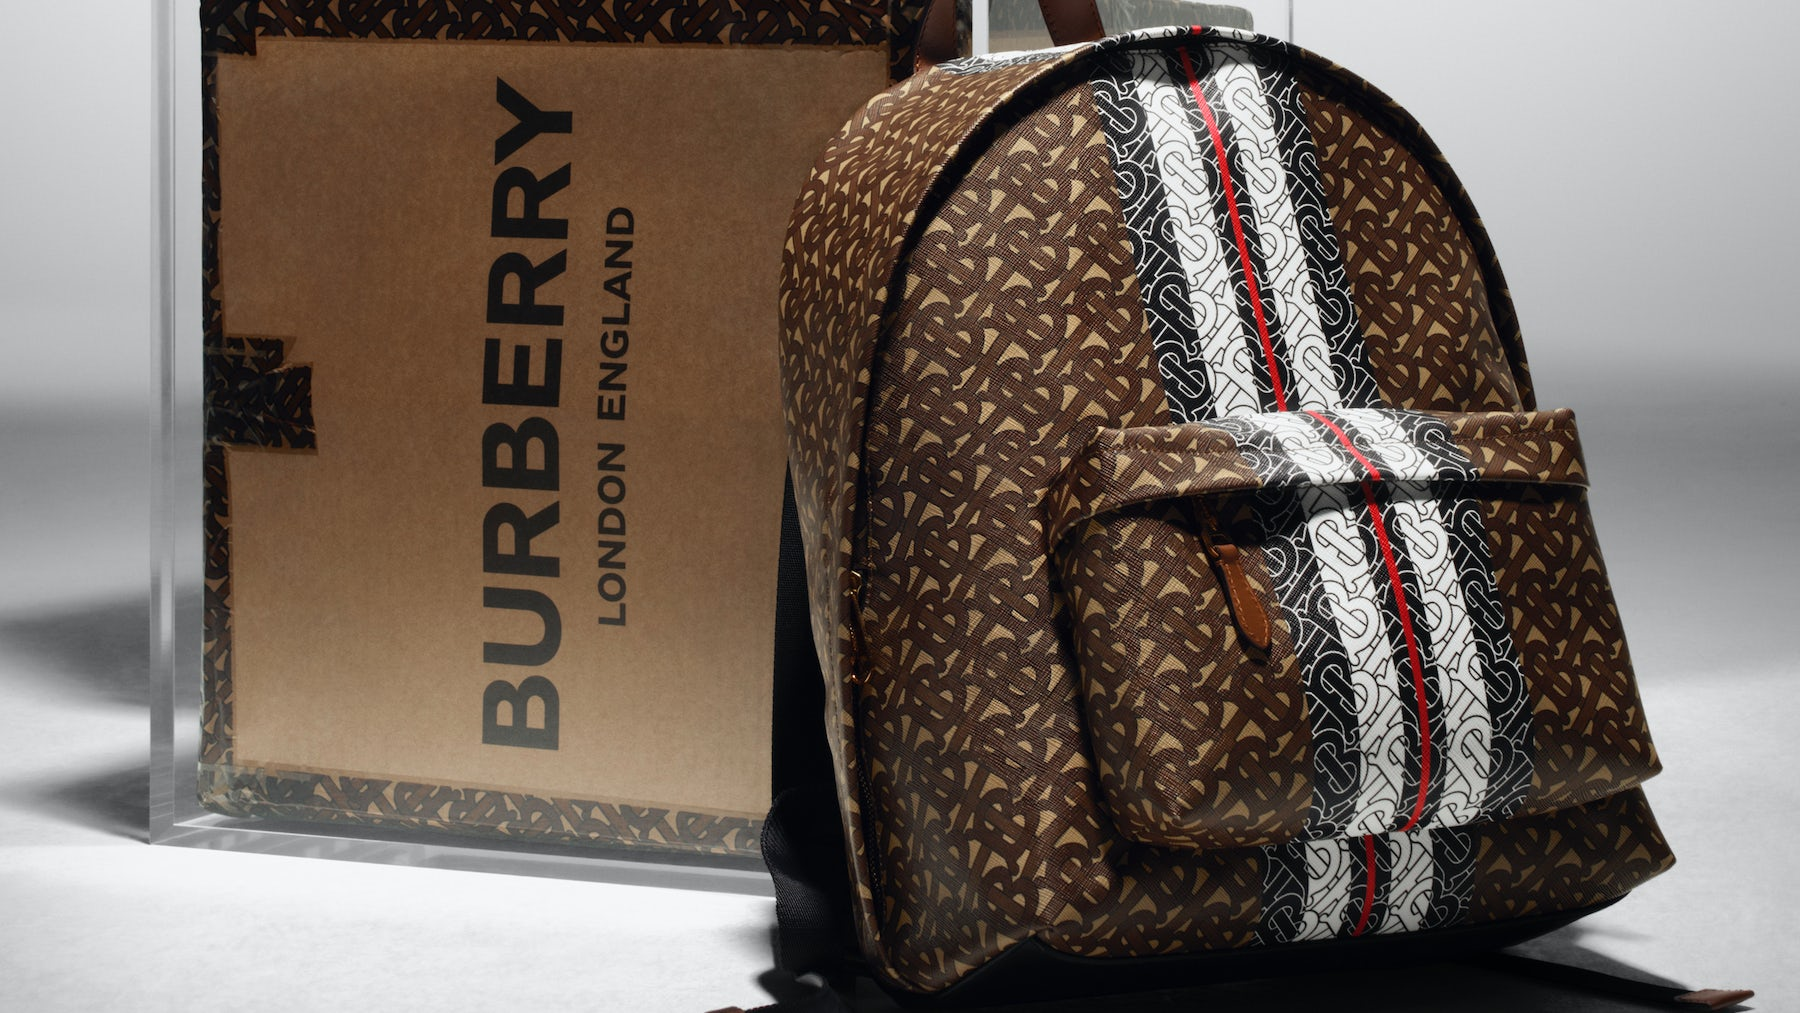 The Verdict on Riccardo Tisci's Burberry